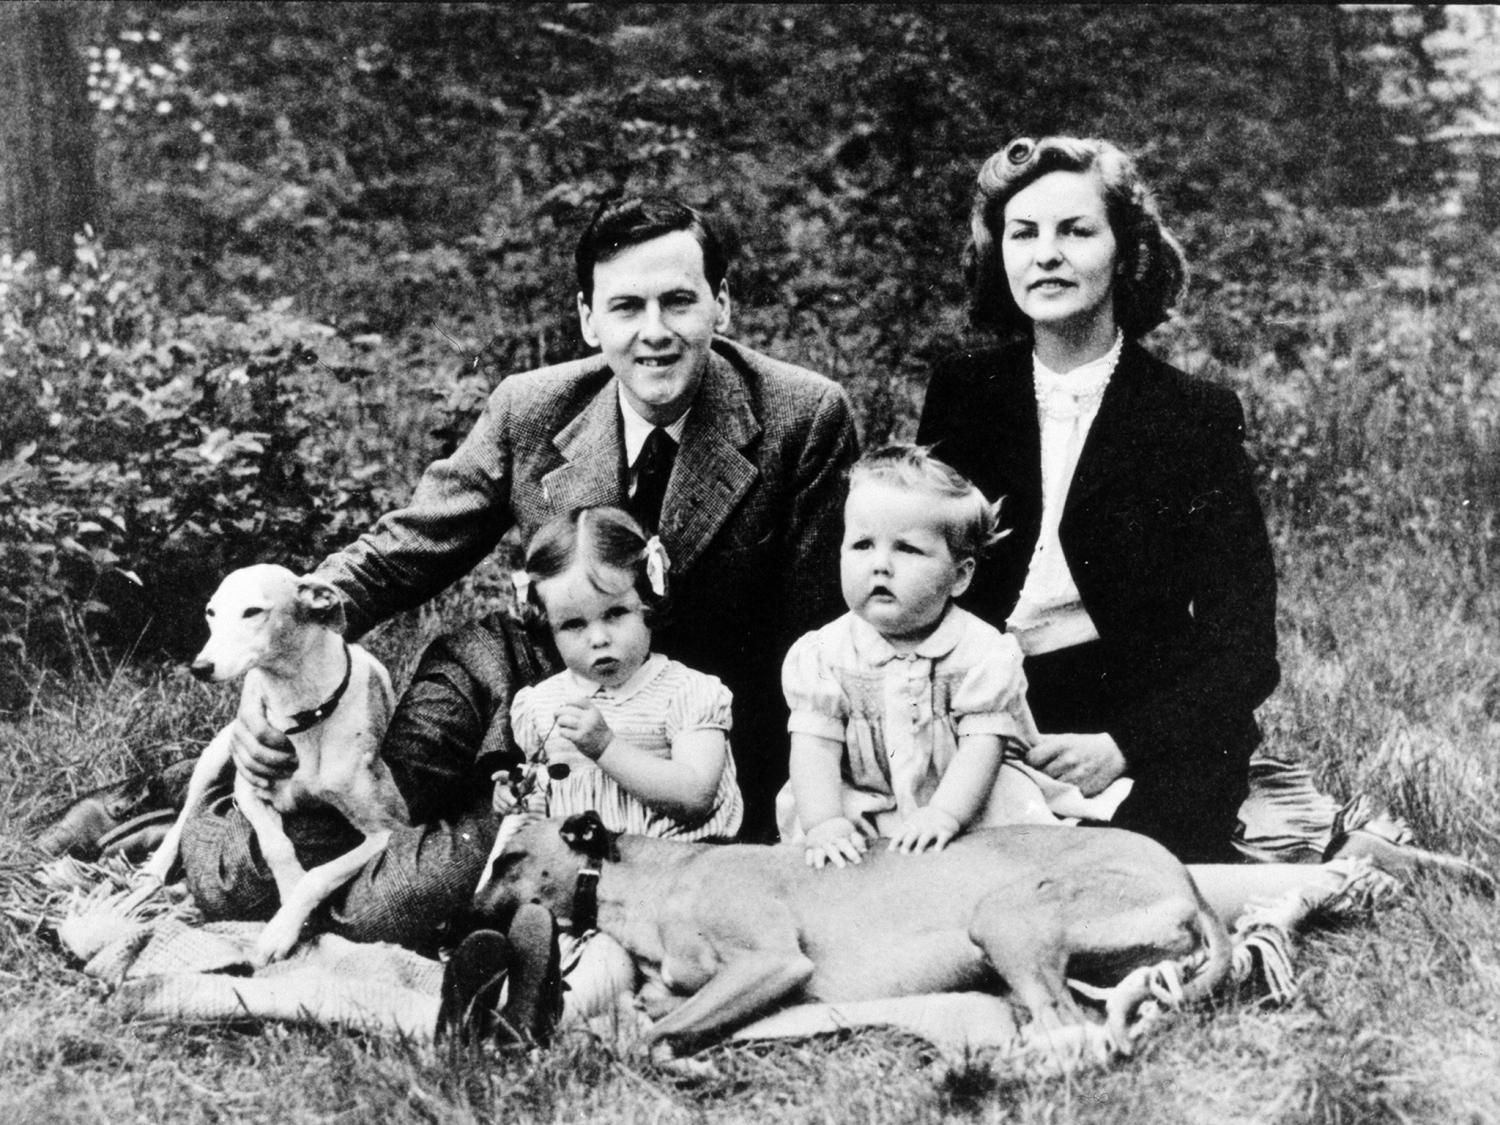 Dowager Duchess of Devonshire: The youngest Mitford sister, an acclaimed writer and the successful head of Chatsworth House